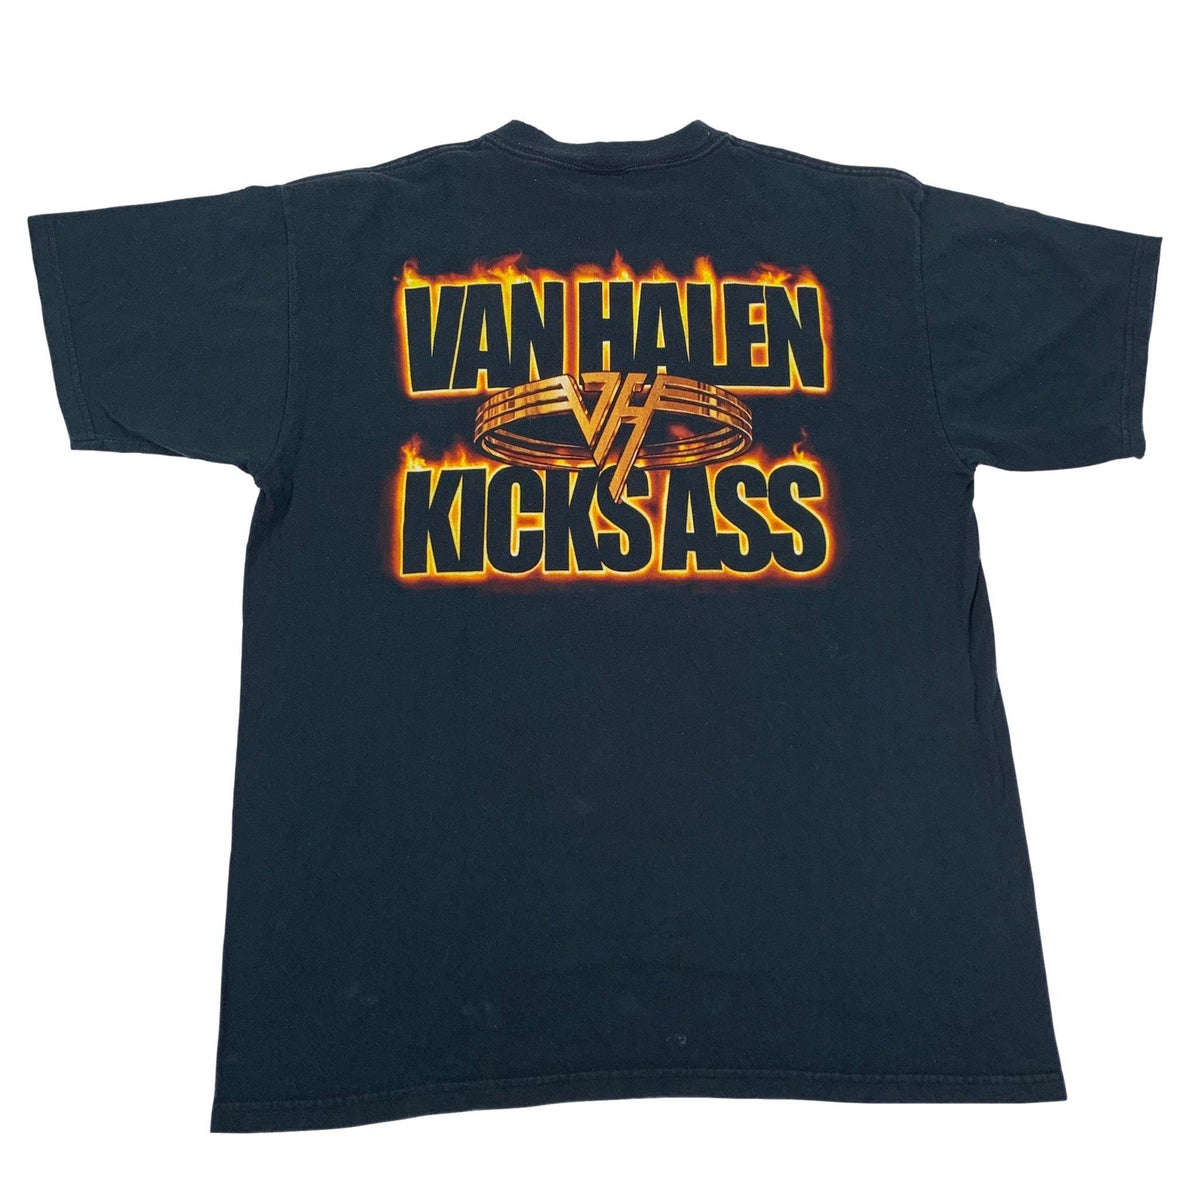 "Vintage Van Halen ""Kicks Ass"" T-Shirt - jointcustodydc"